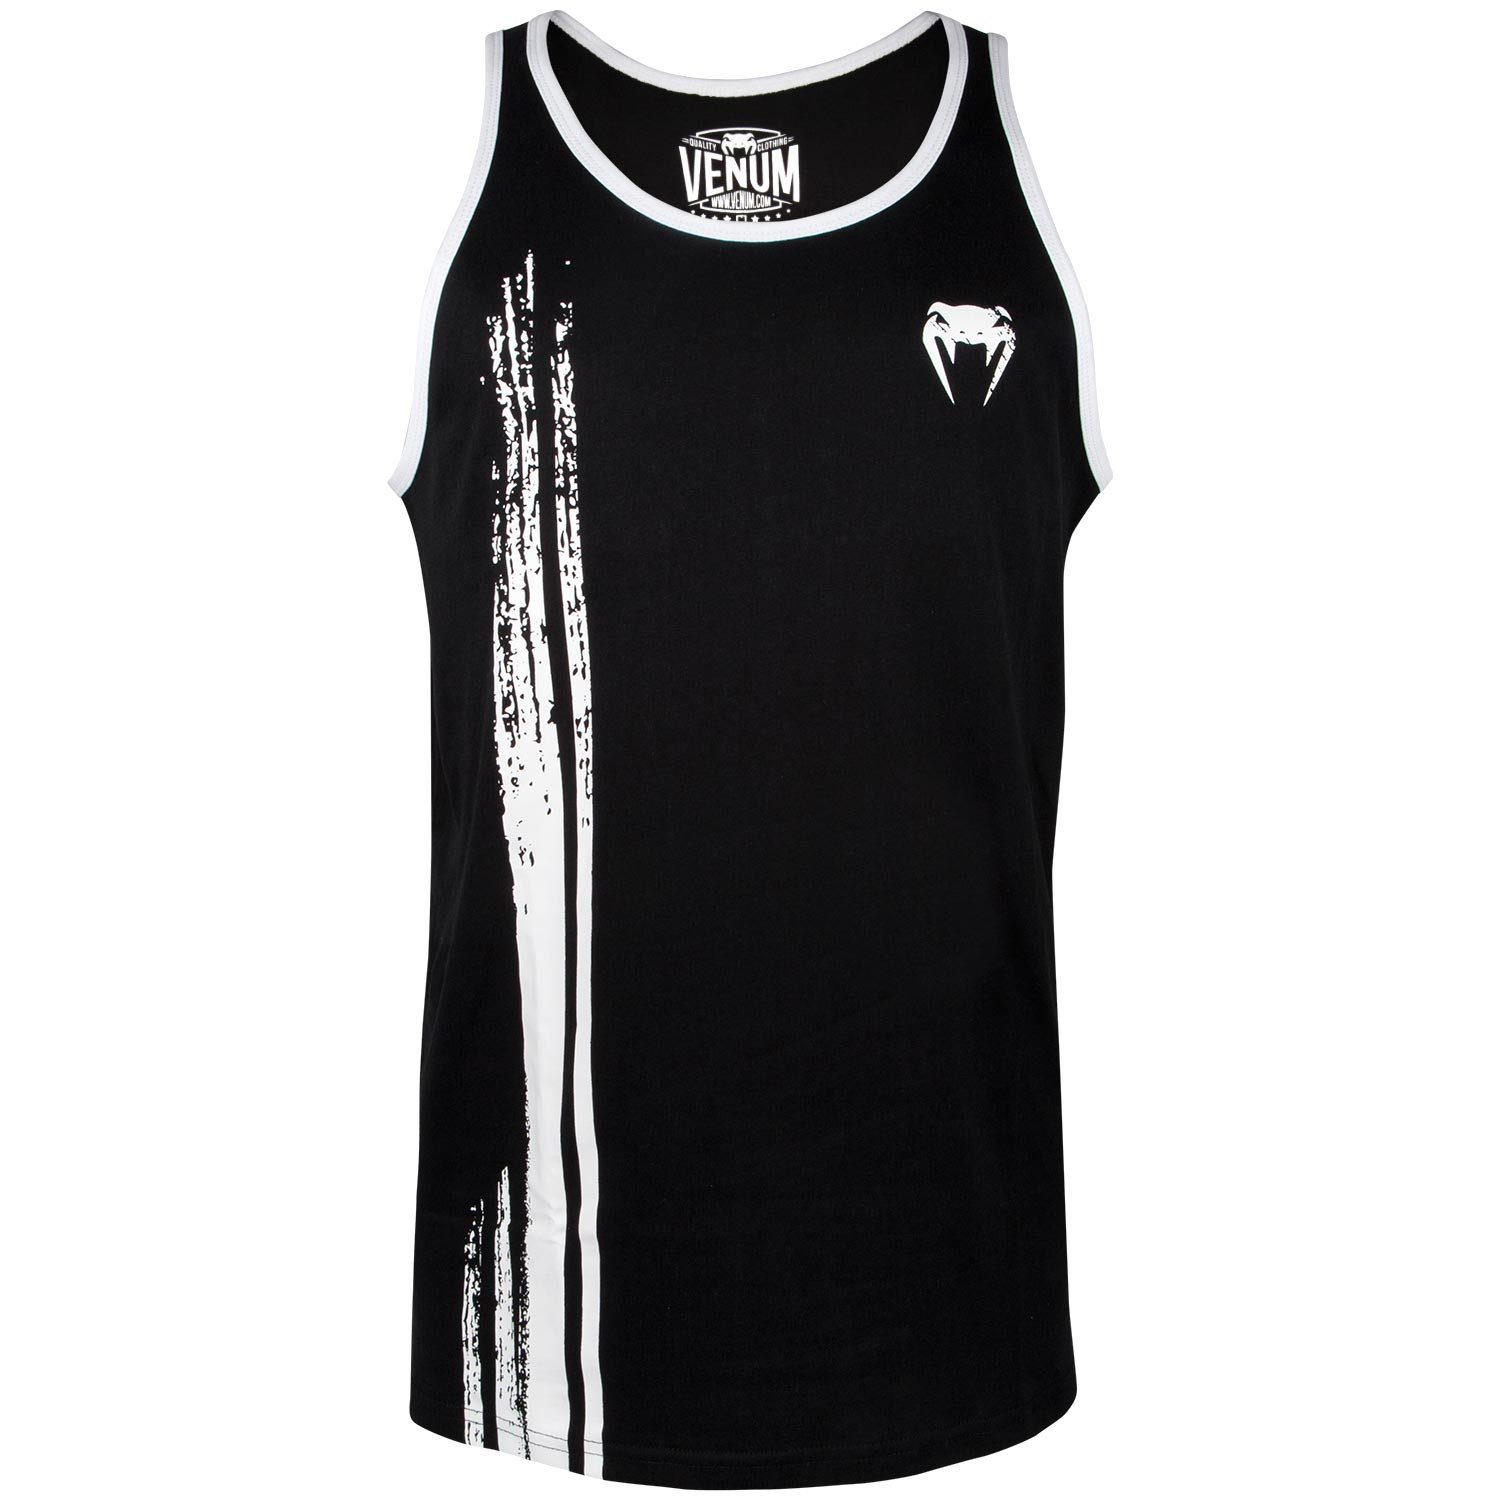 f88c14f0384 Потник - Venum Bangkok Spirit Tank Top - Black